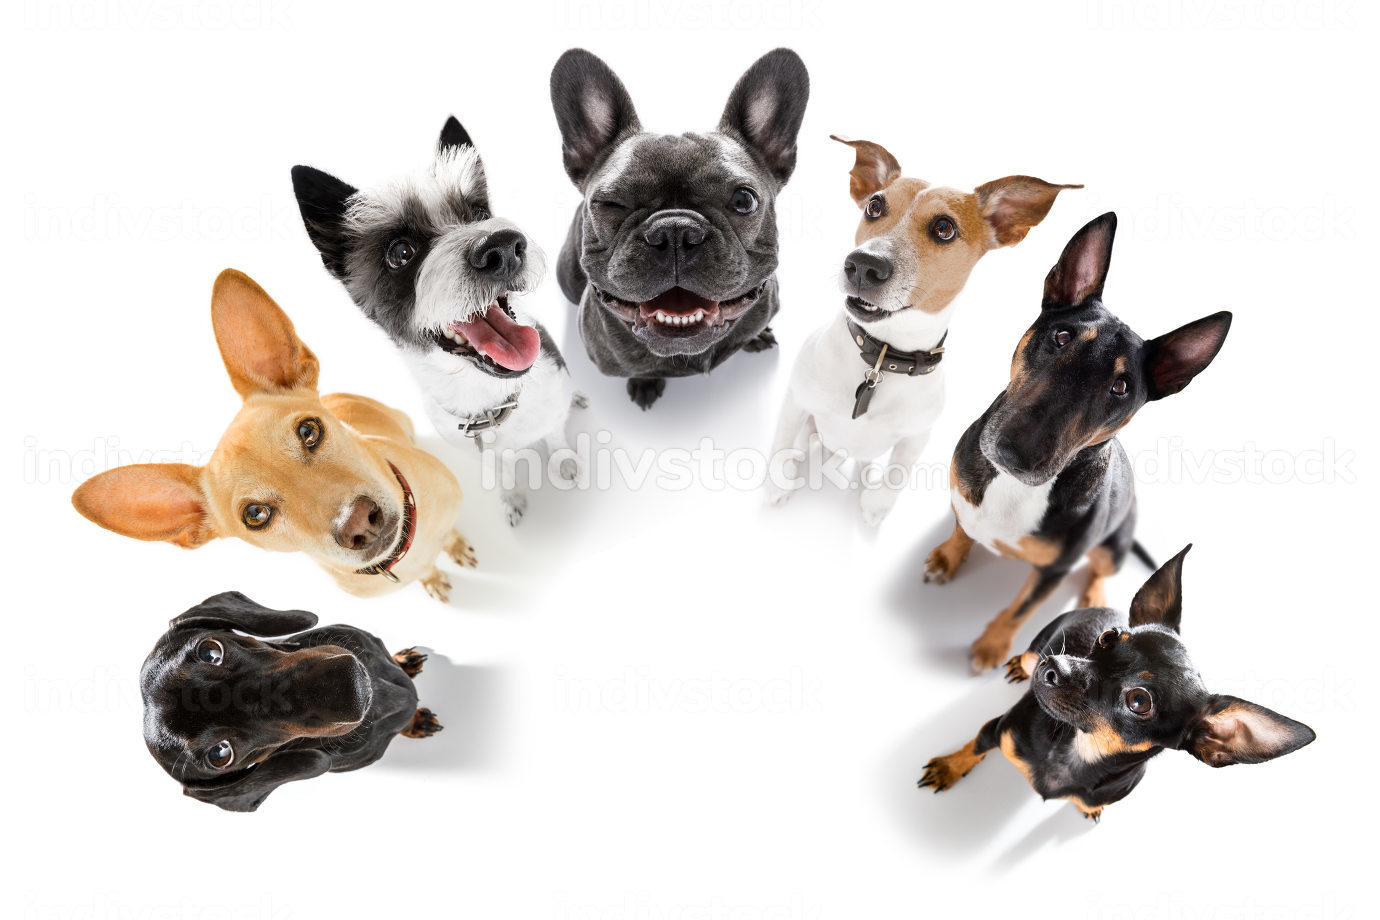 team group row of dogs waiting patient for a walk isolated on white background